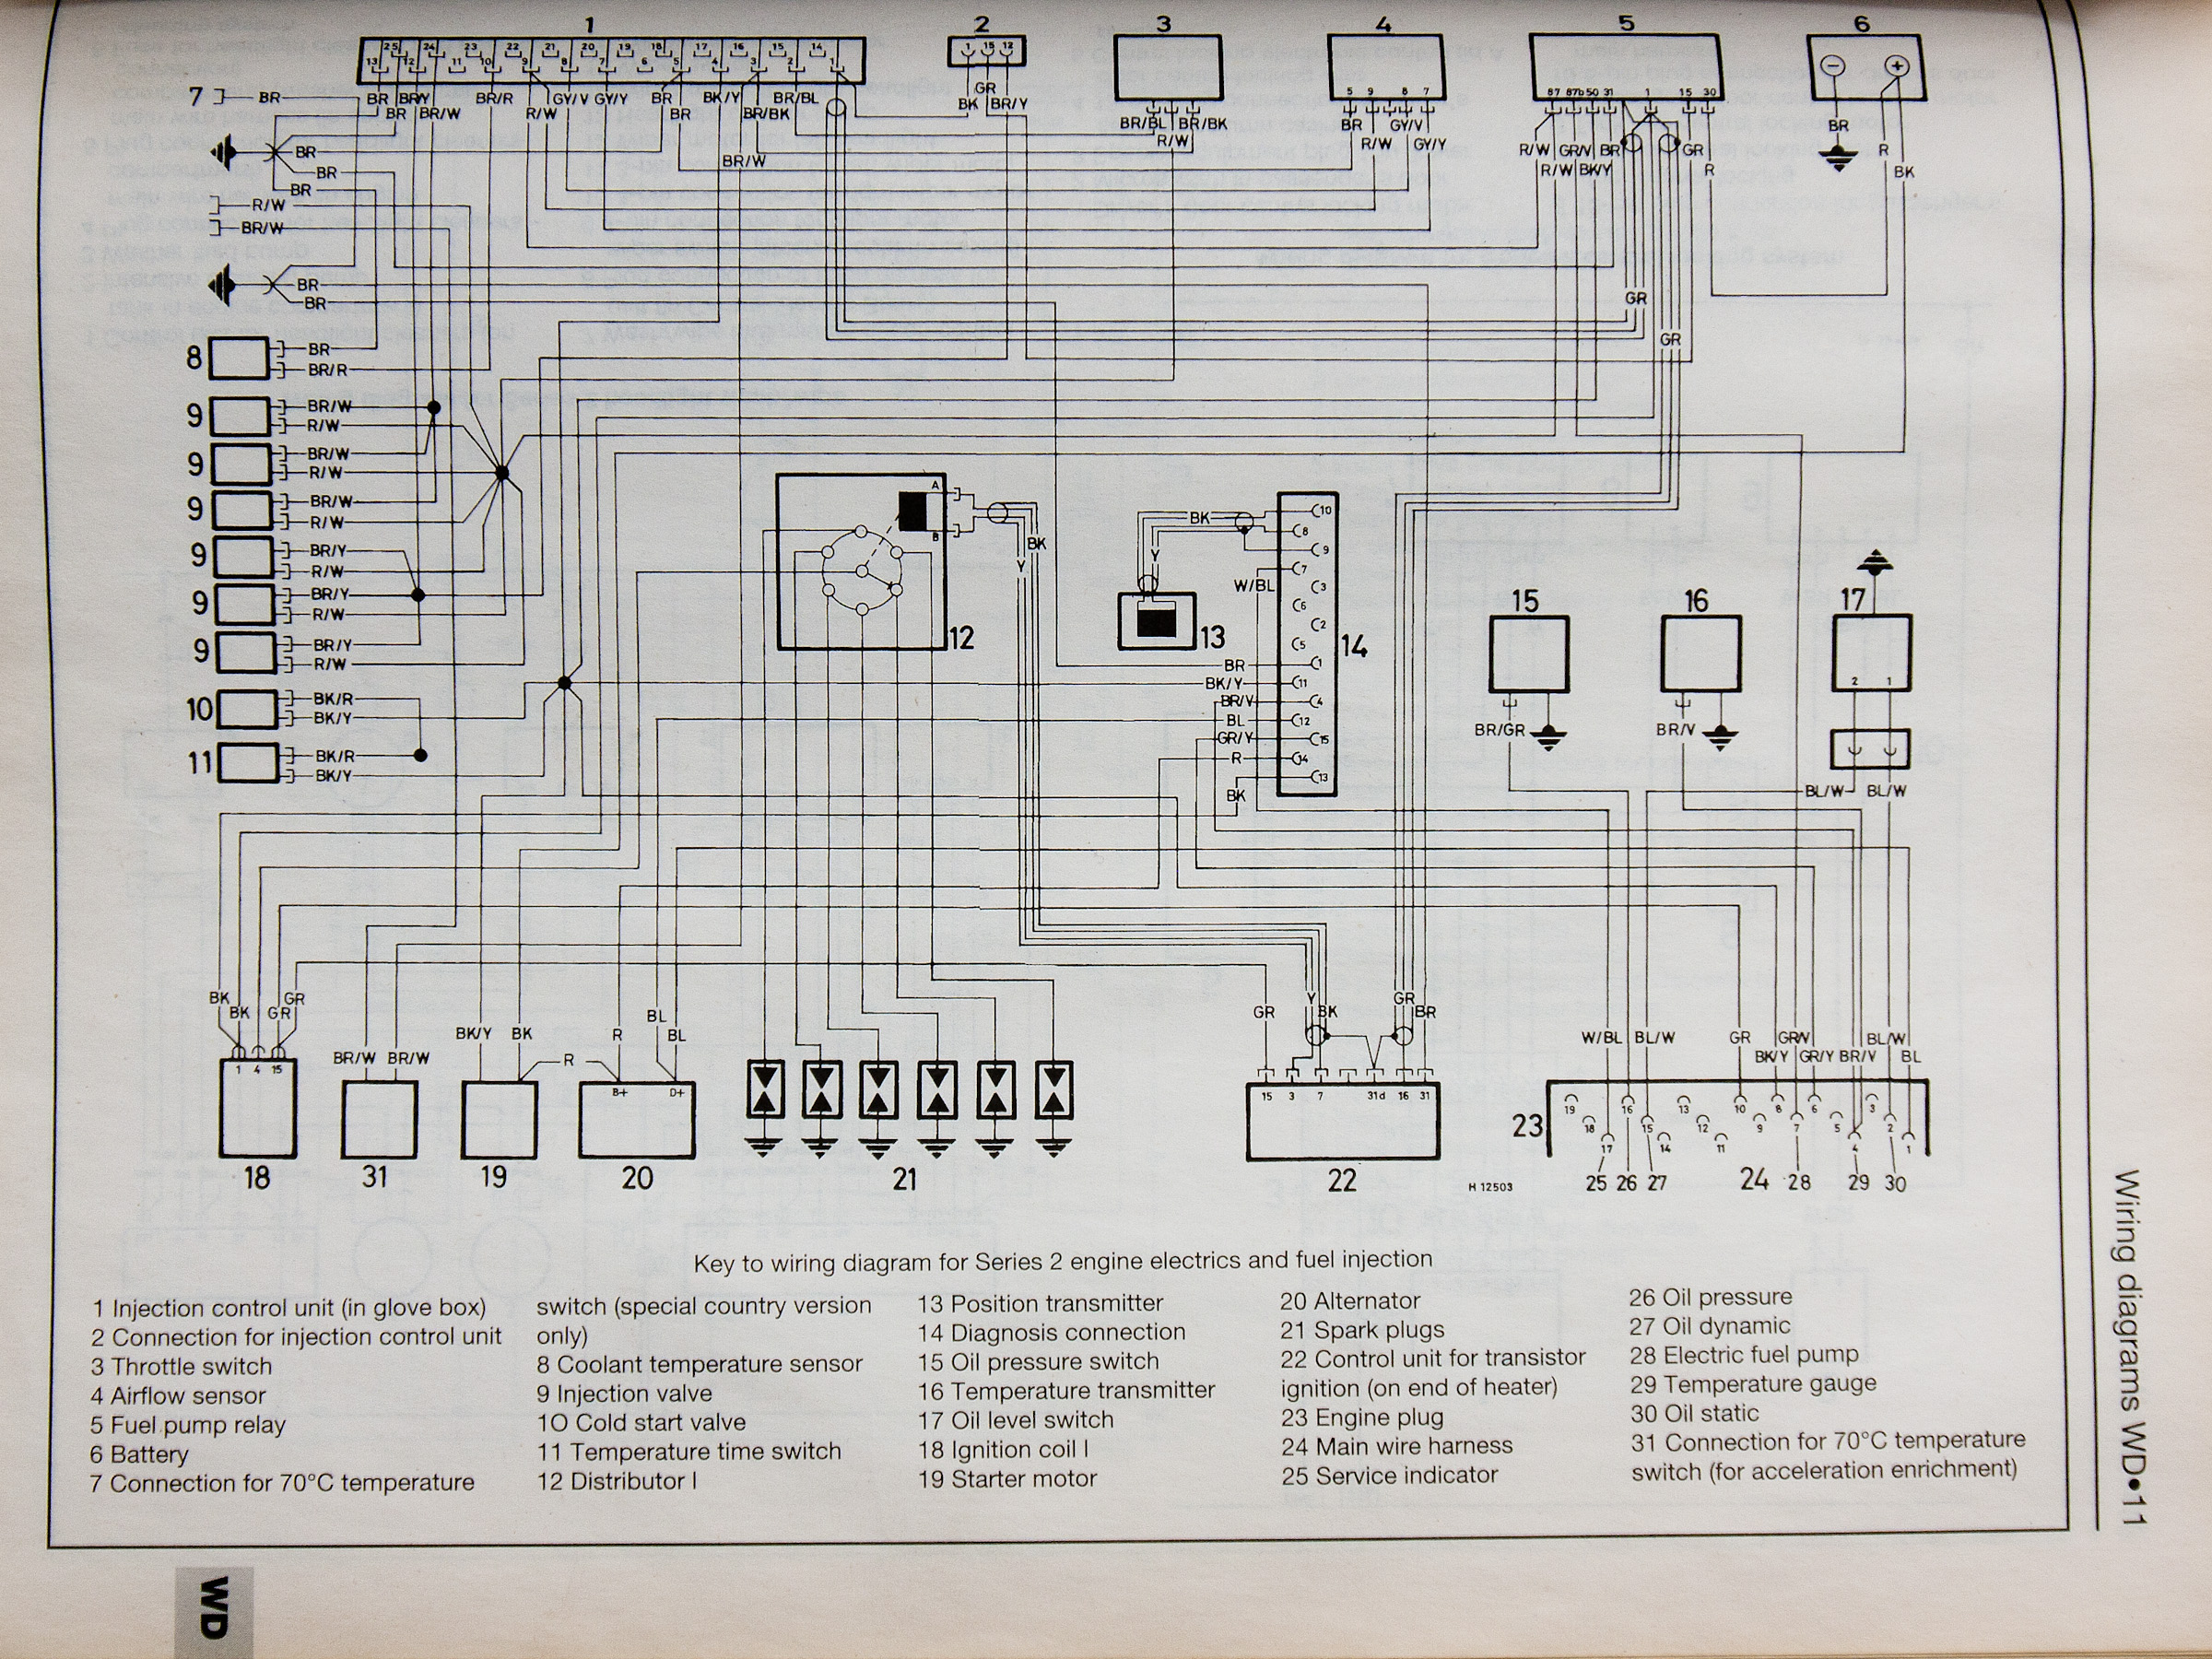 1987 bmw 528e wiring diagram schematics wiring diagrams u2022 rh parntesis  co 1994 BMW 325I Engine Diagram 2006 BMW 325I Fuse Location